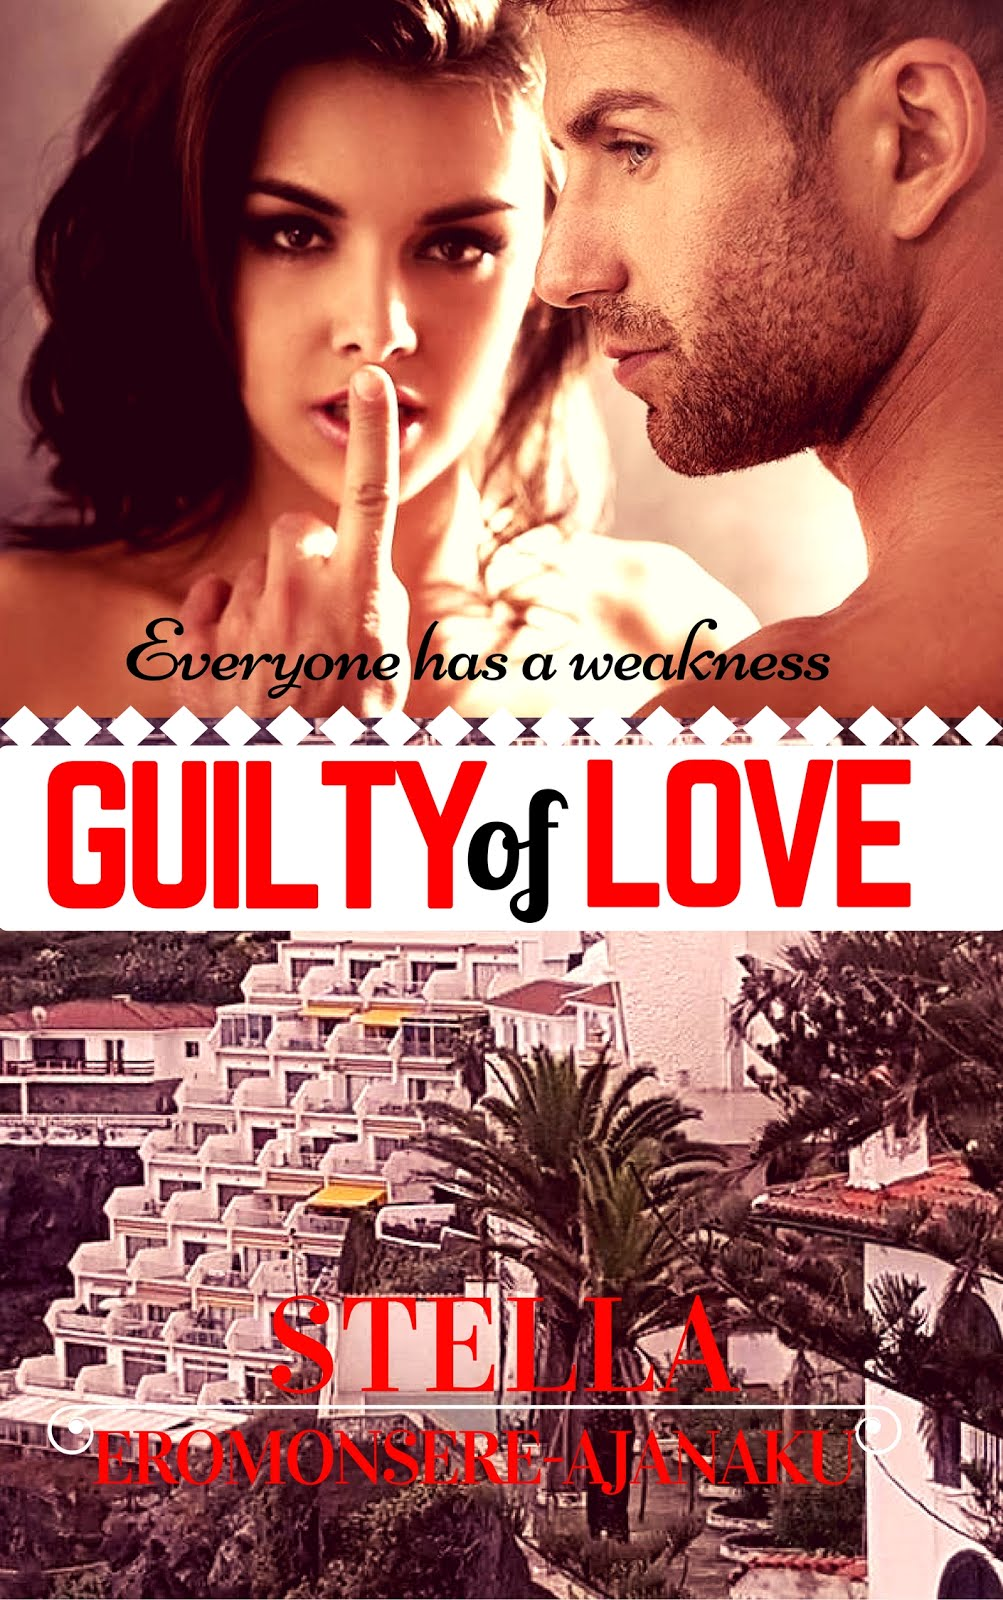 Click to Preorder GUILTY of LOVE for 99c or 99p